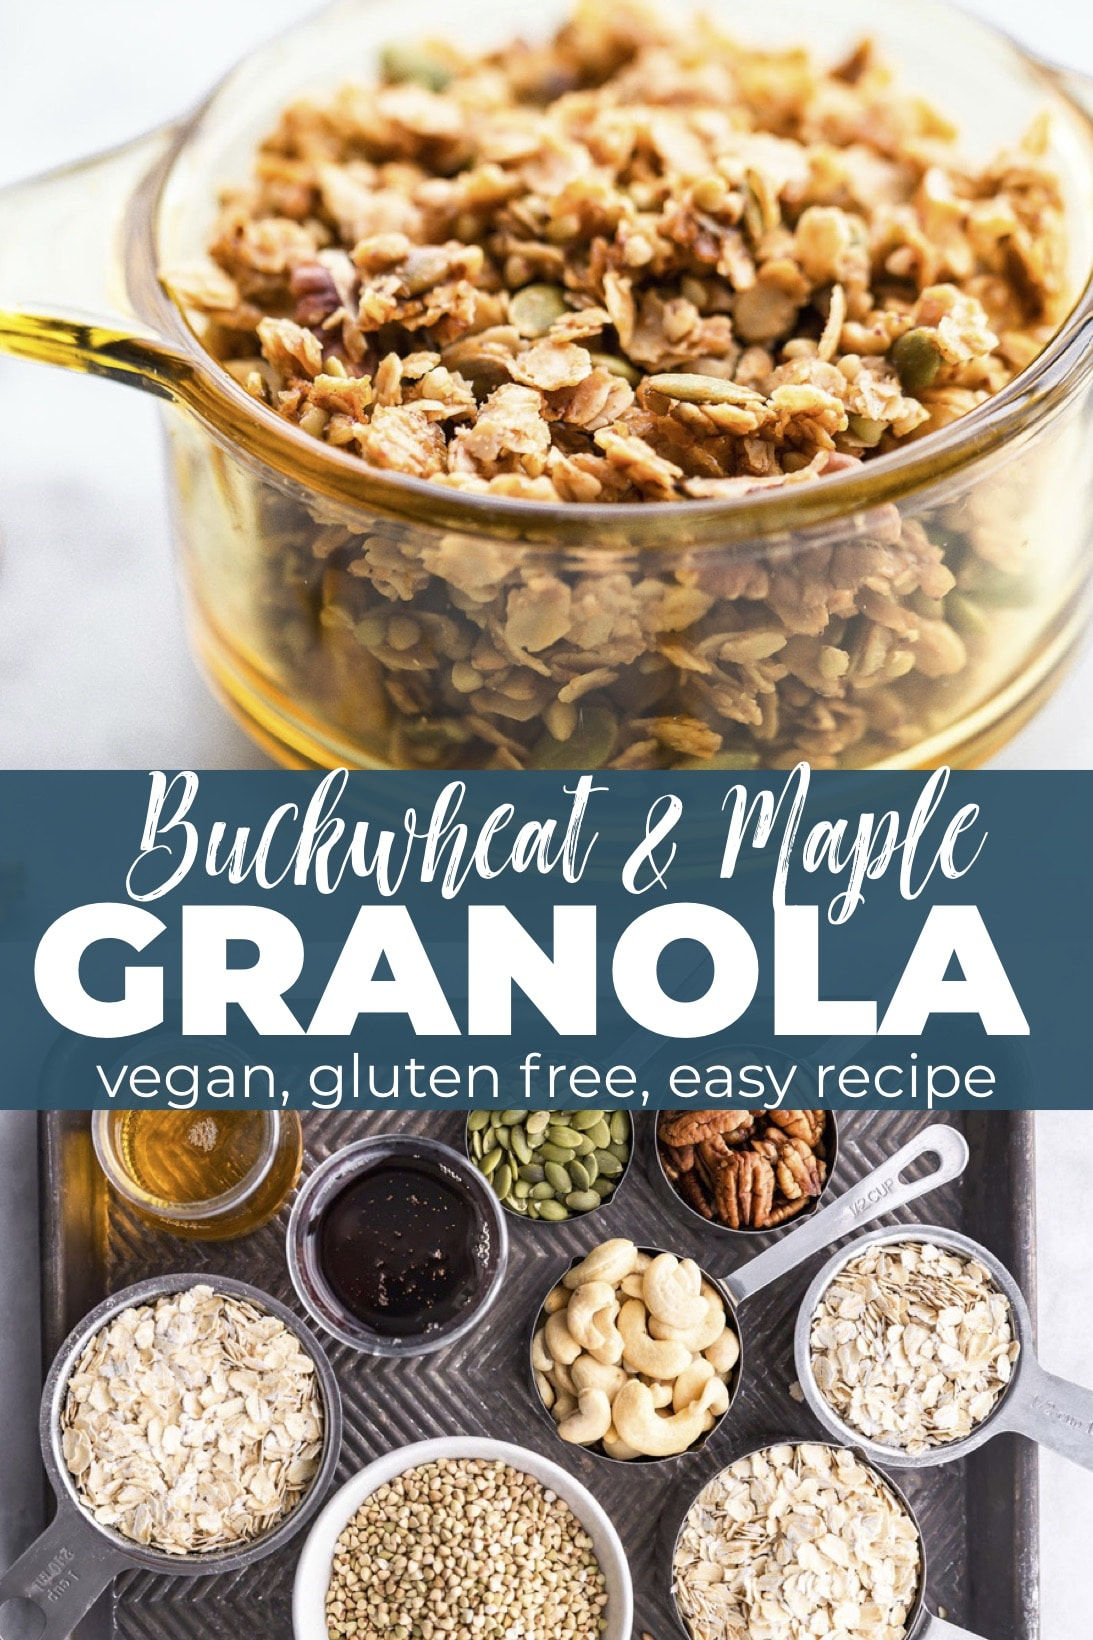 This homemade granola is made with buckwheat groats, gluten free rolled oats, nuts, spices and is lightly sweetened with maple syrup. It's a delicious, wholesome anytime snack. Plus, it's perfect for holiday food gifts! Pair it with whatever you'd like- yogurt, milk, dried fruit, chocolate, etc. Or, eat it by itself! This granola recipe is vegan and refined sugar free. #granola #glutenfree #vegan #homemade